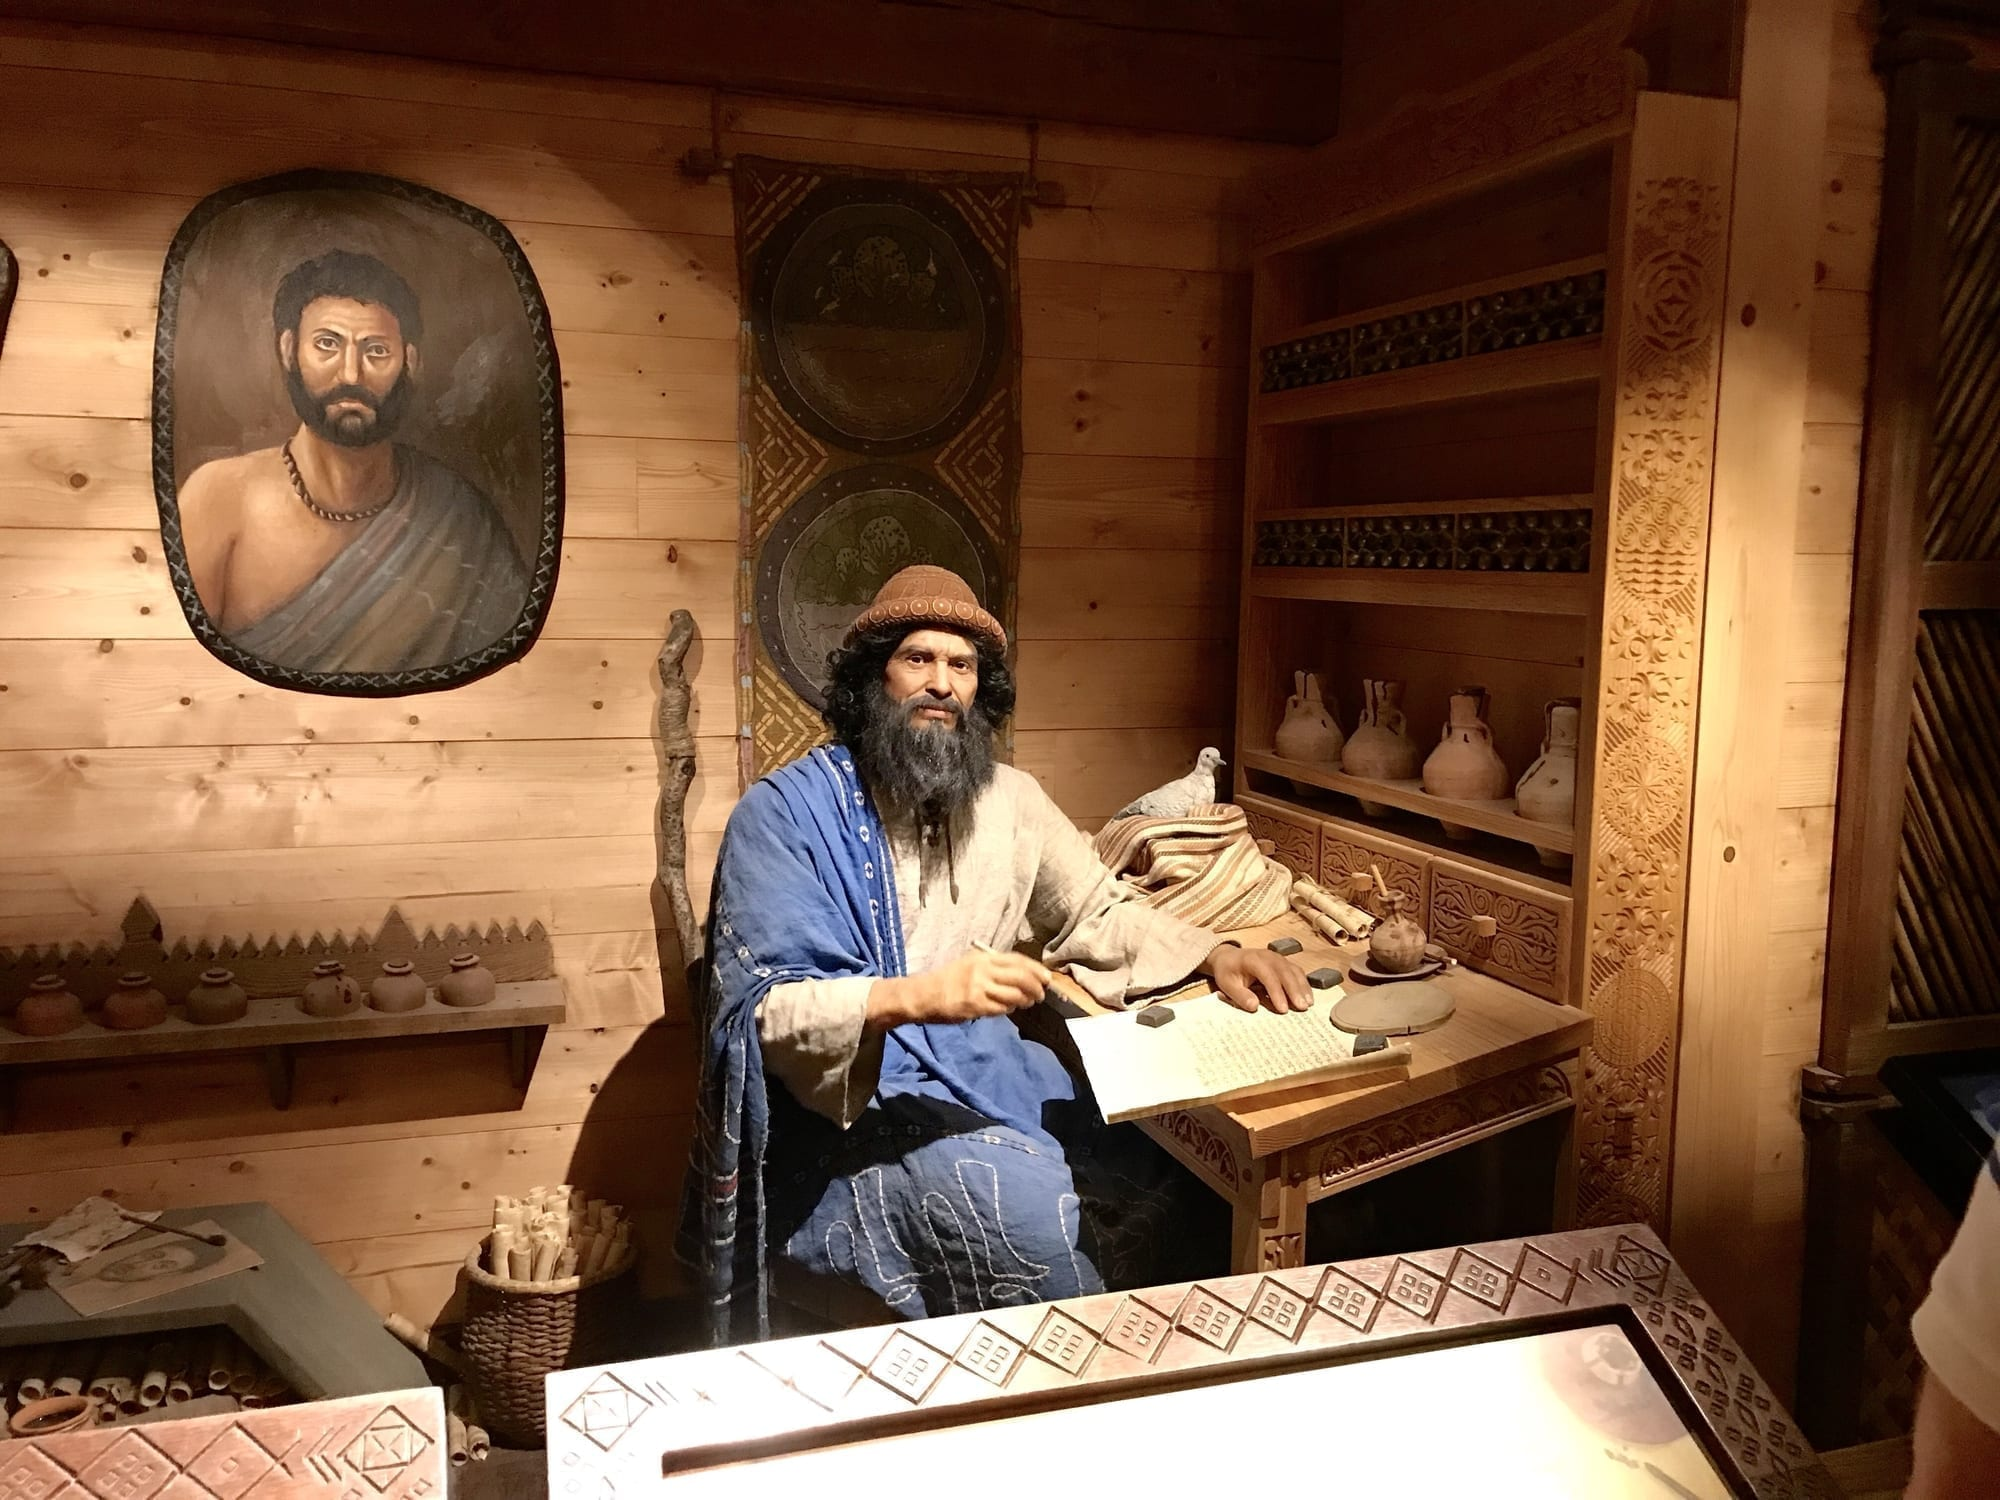 Noah figure at the Ark Encounter: D 109871529 © Linda Johnsonbaugh | Dreamstime.com